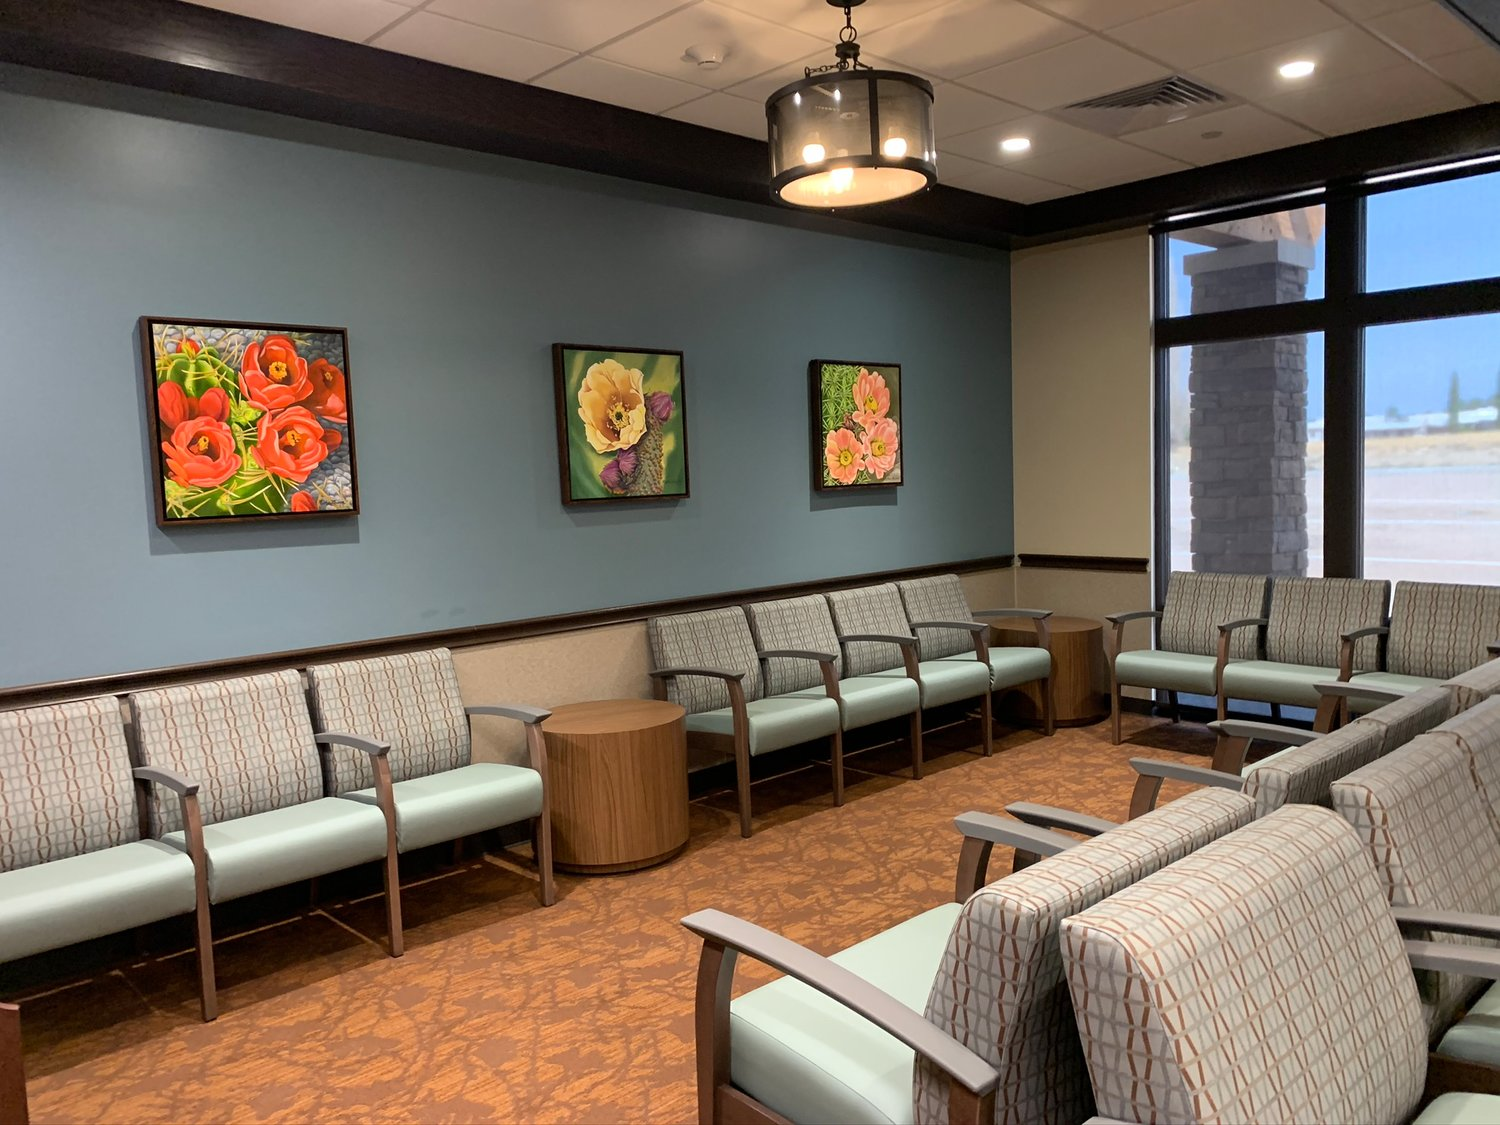 The outpatient lobby at Three Crosses Regional Hospital has its own entrance.